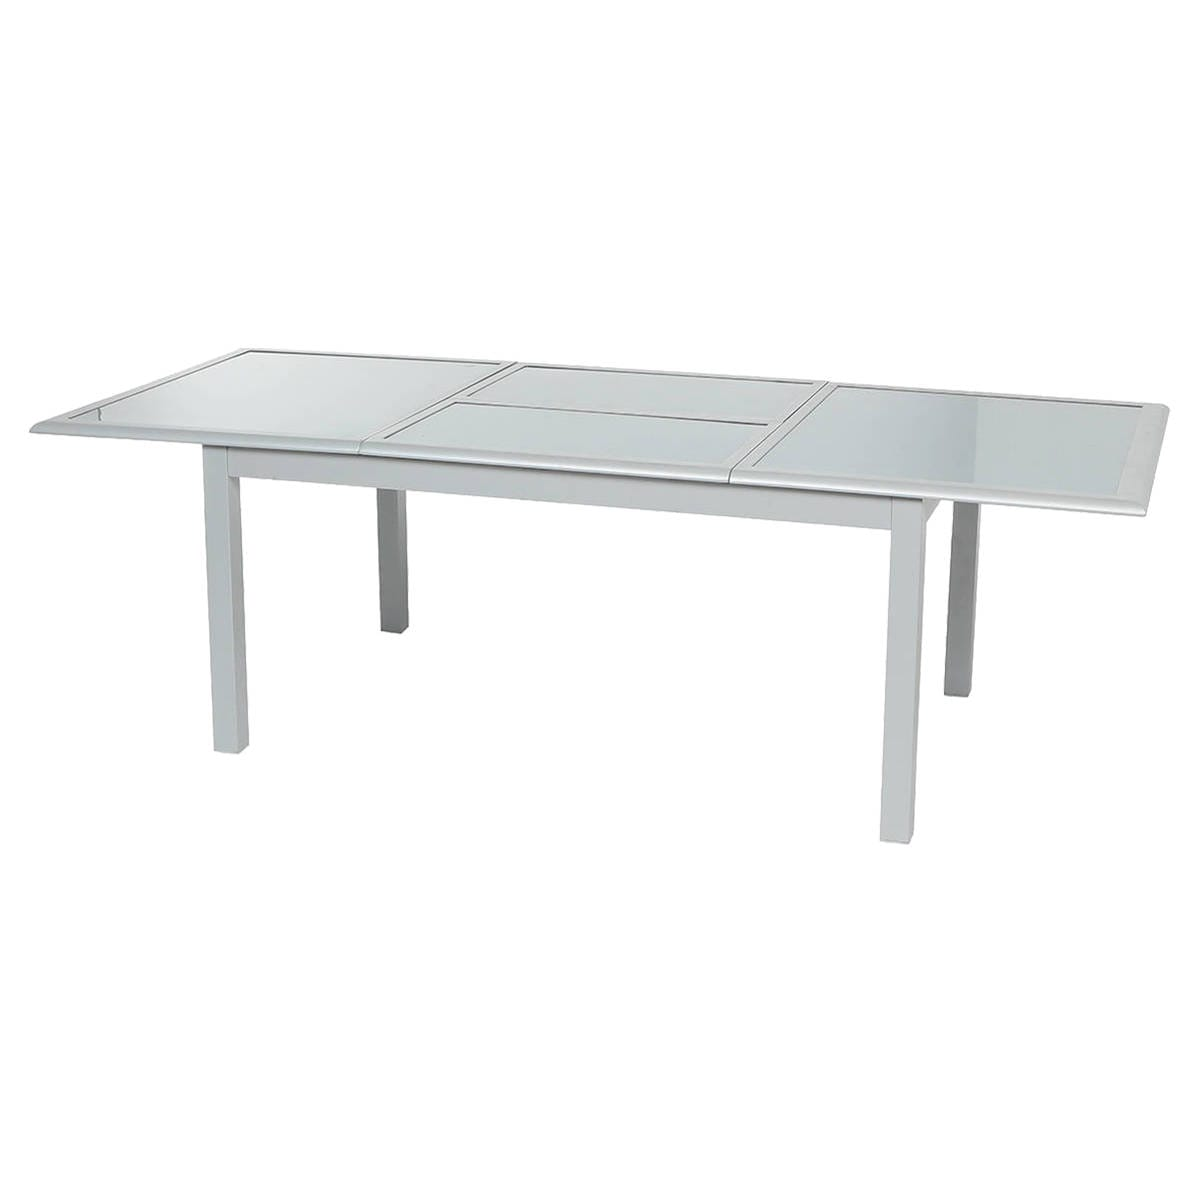 Table extensible azua verre gris silver mat hesp ride 10 places - Table ovale verre extensible ...